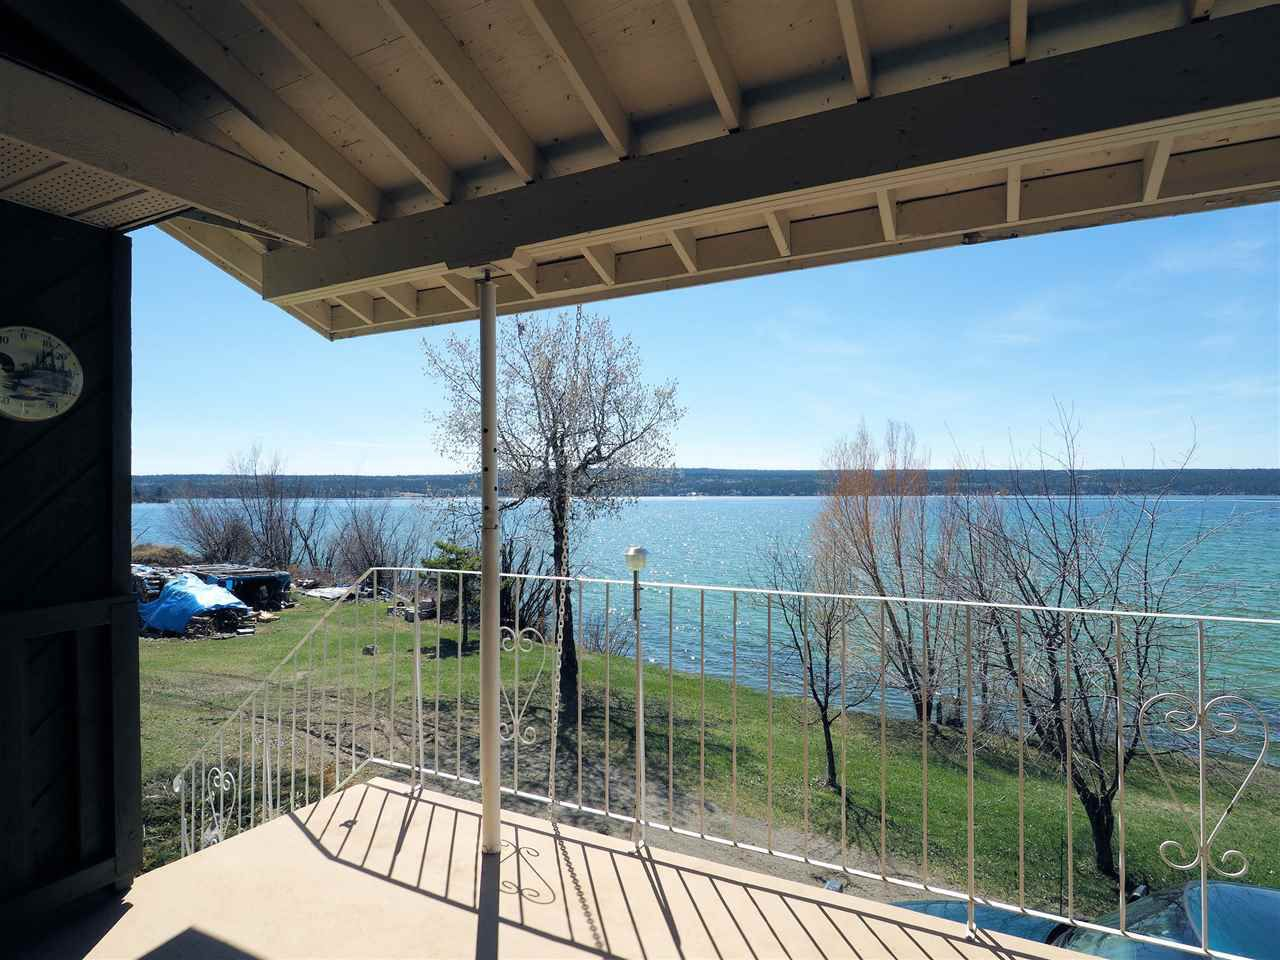 Main Photo: 3920 S CARIBOO 97 Highway: Lac la Hache House for sale (100 Mile House (Zone 10))  : MLS®# R2347664